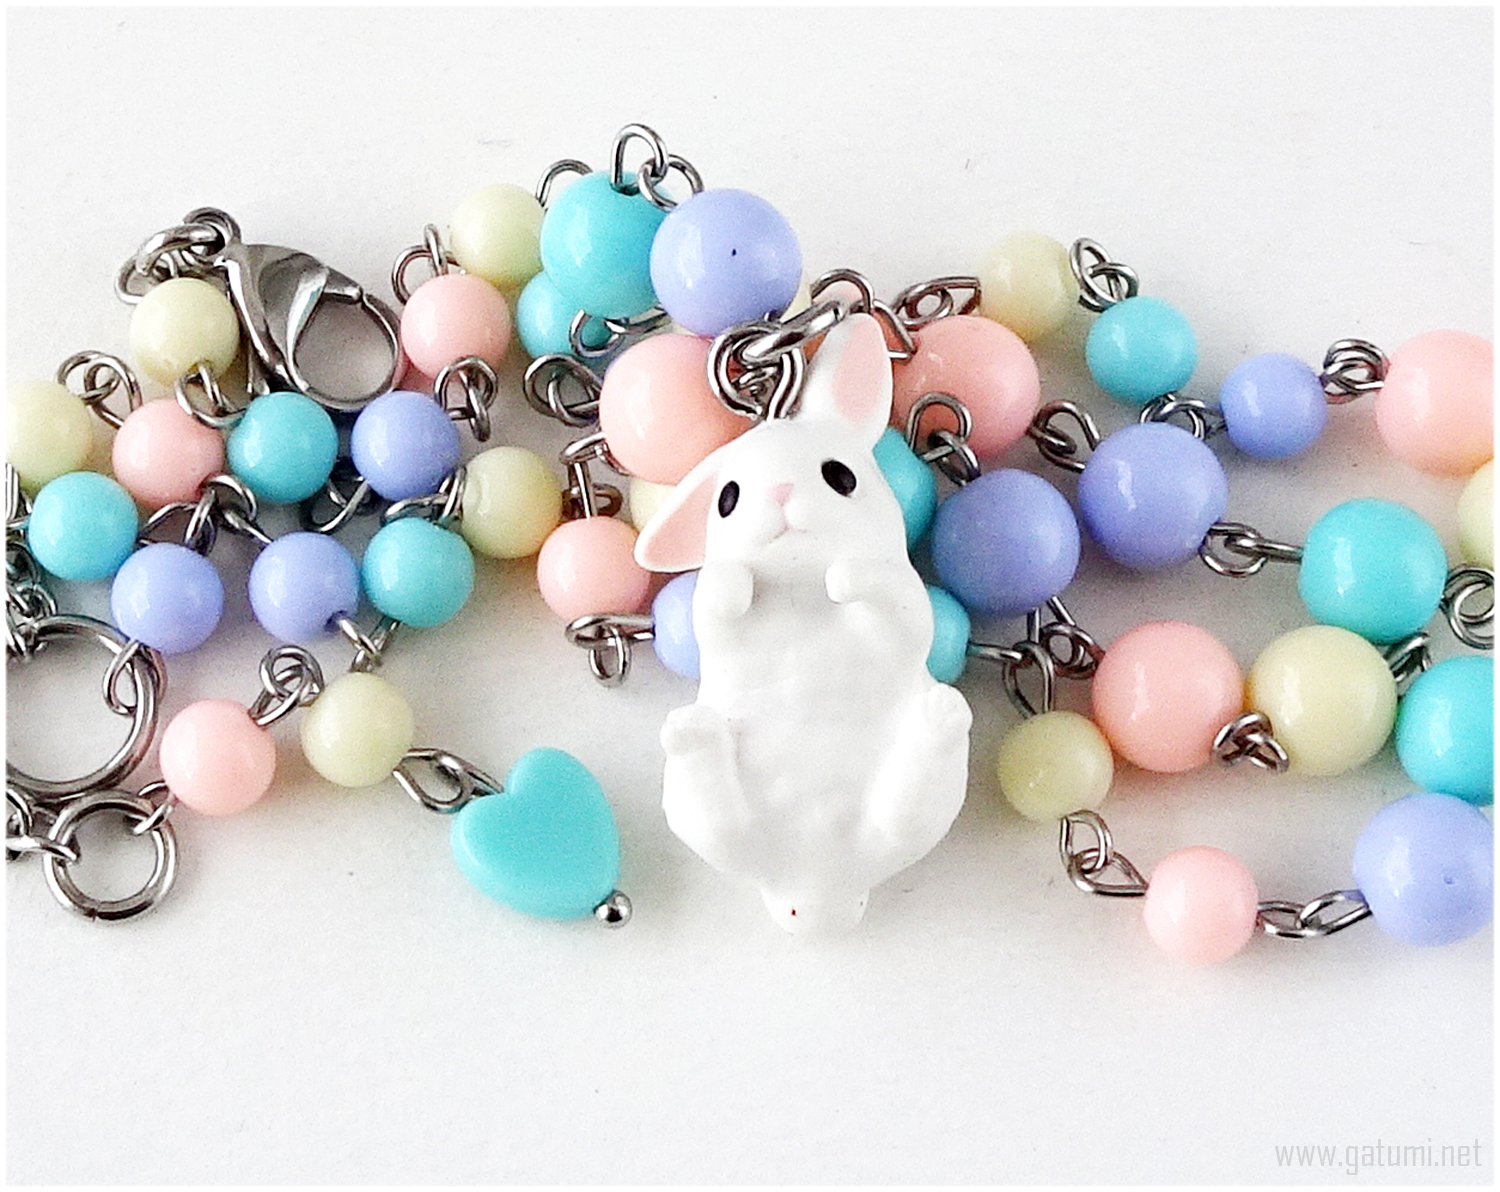 Primary image for White Bunny Necklace, Pastel Jewelry, Fairy Kei, Kawaii Jewelry, Easter